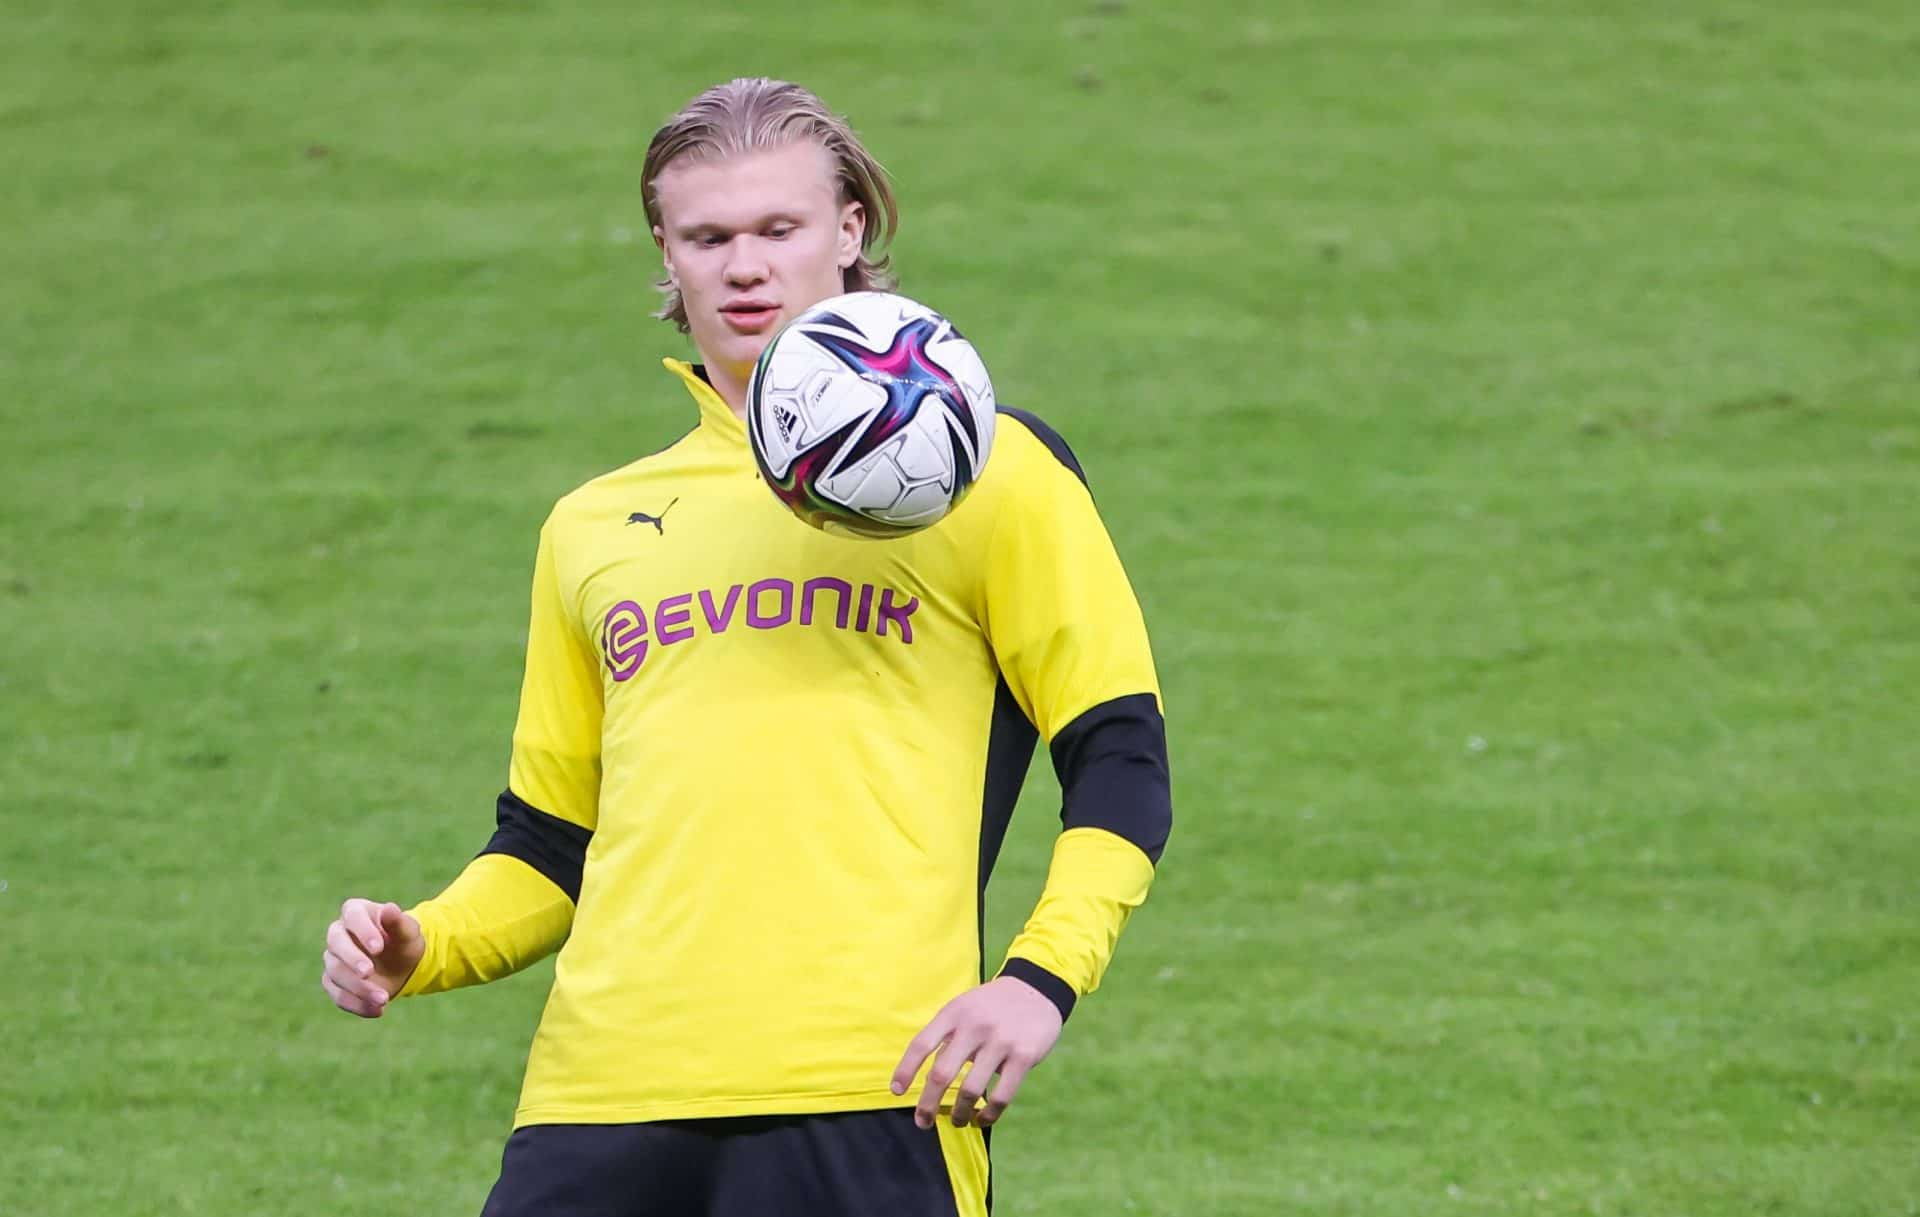 Fans go crazy about Erling Haaland's performance against Leipzig on Twitter